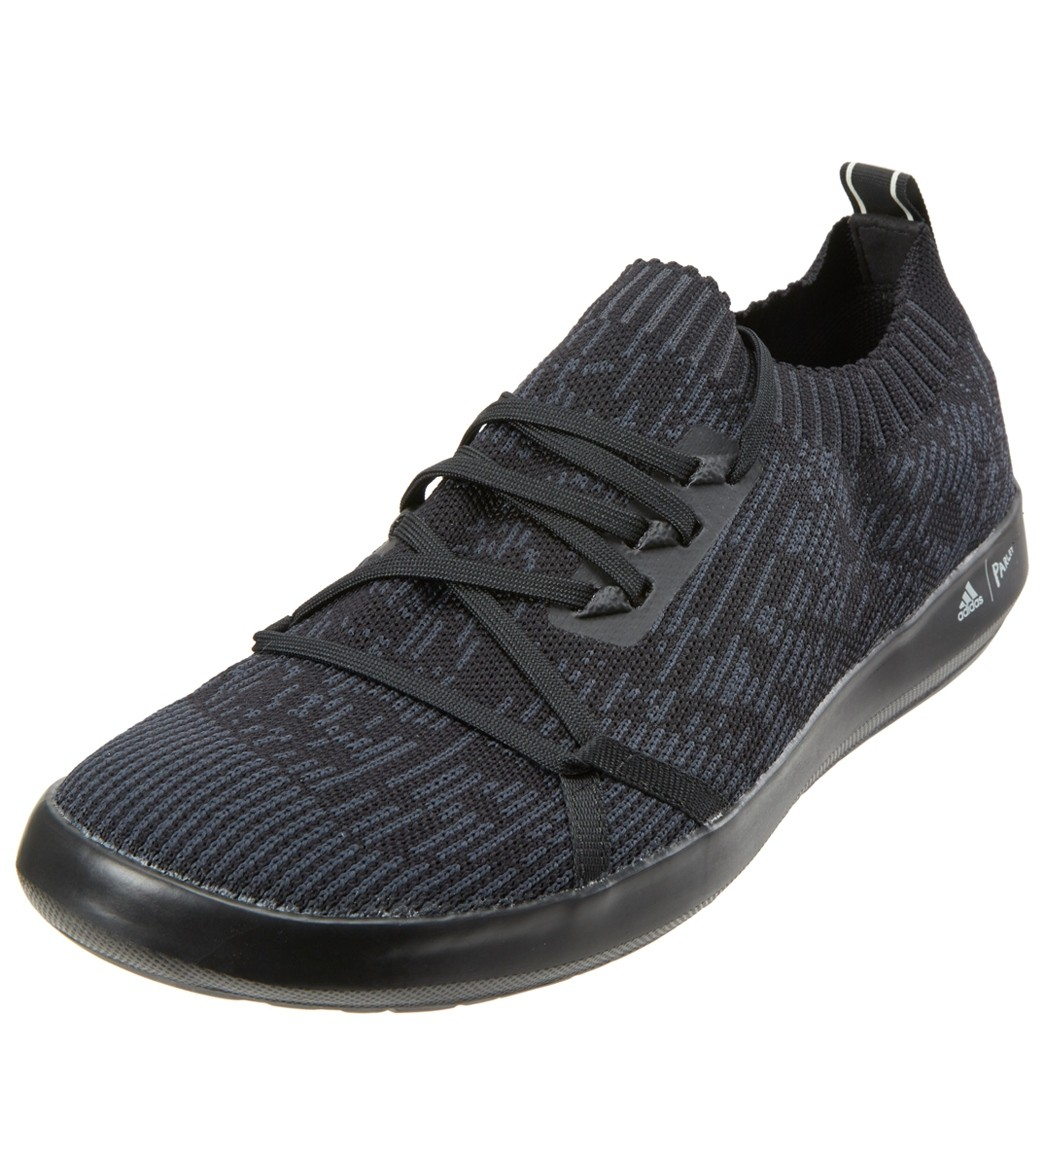 detailed look 2beaa 3d677 Adidas Mens Terrex Boat DLX Parley Water Shoe at SwimOutlet.com - Free  Shipping